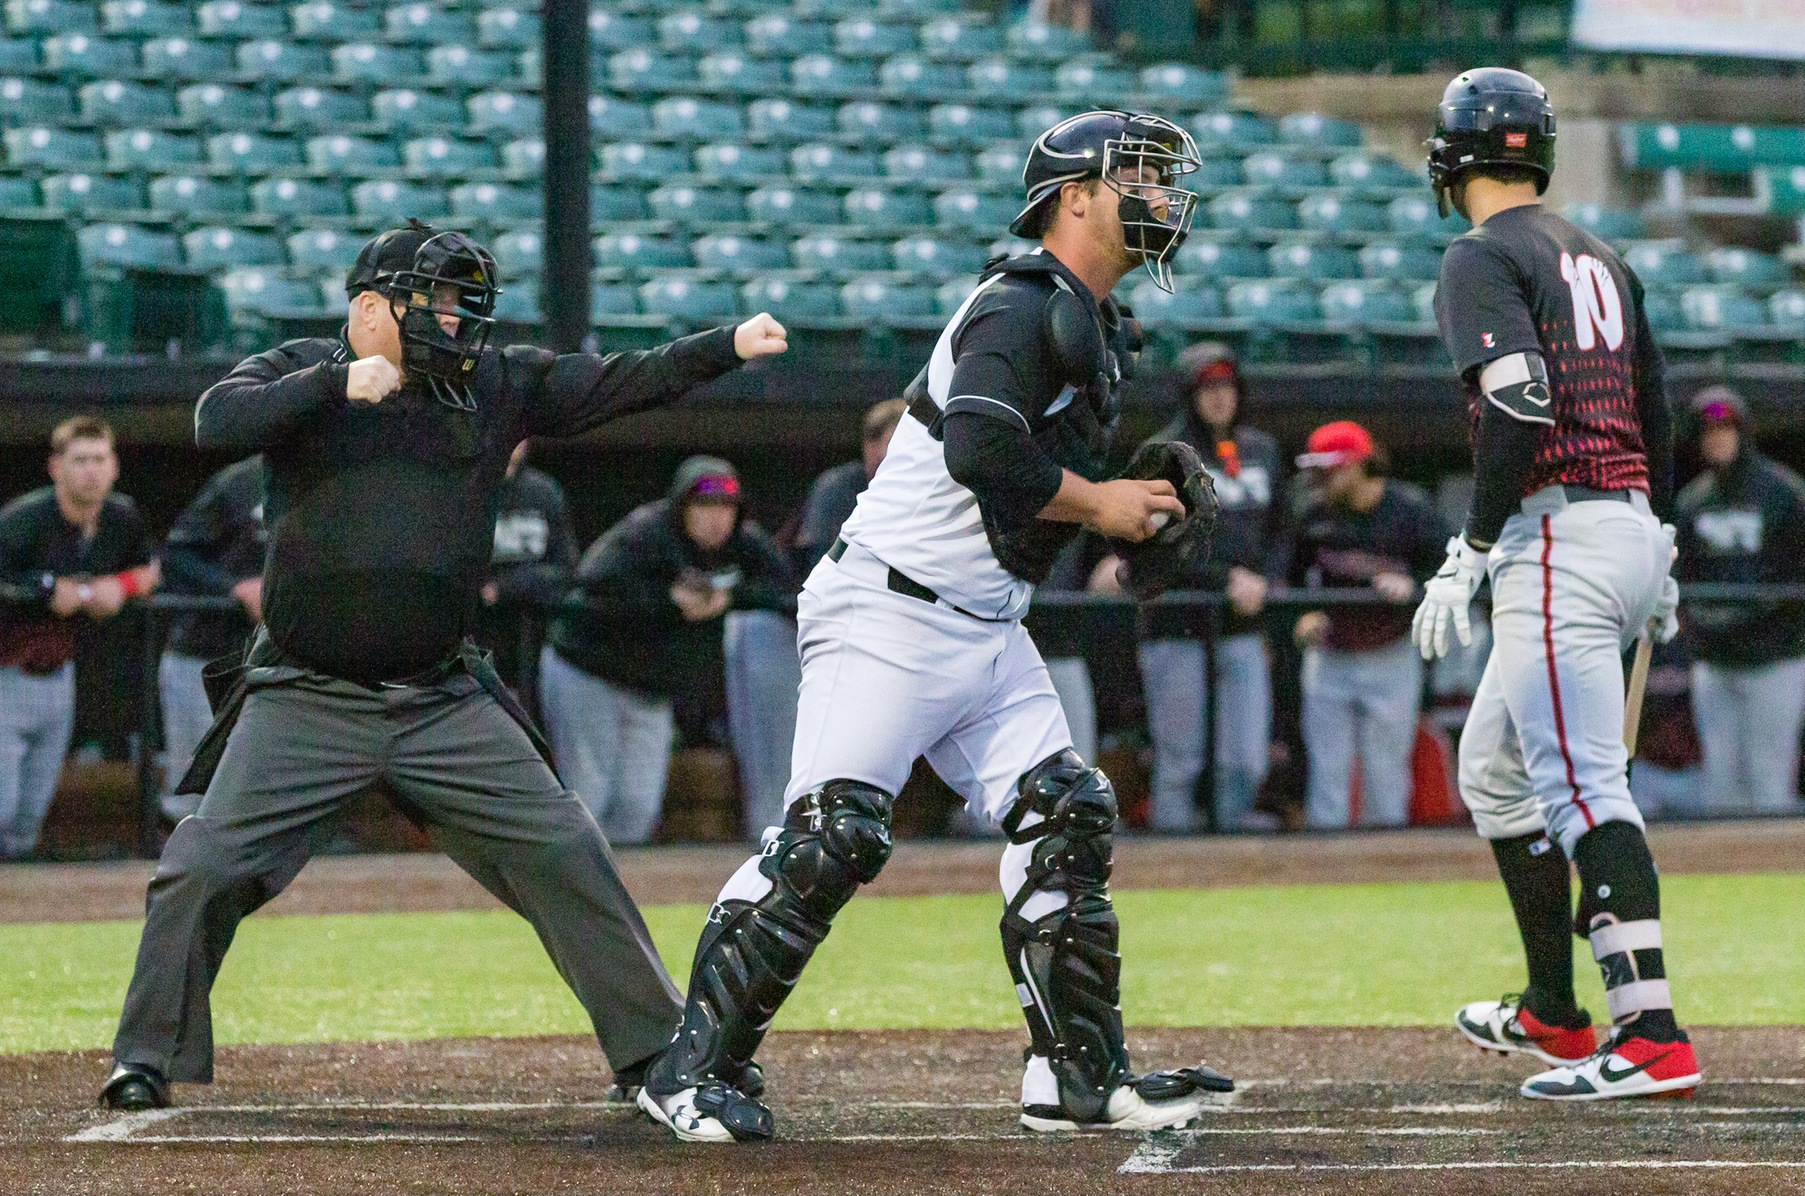 Rascals Shutout Wild Things 4-0 For Series Win